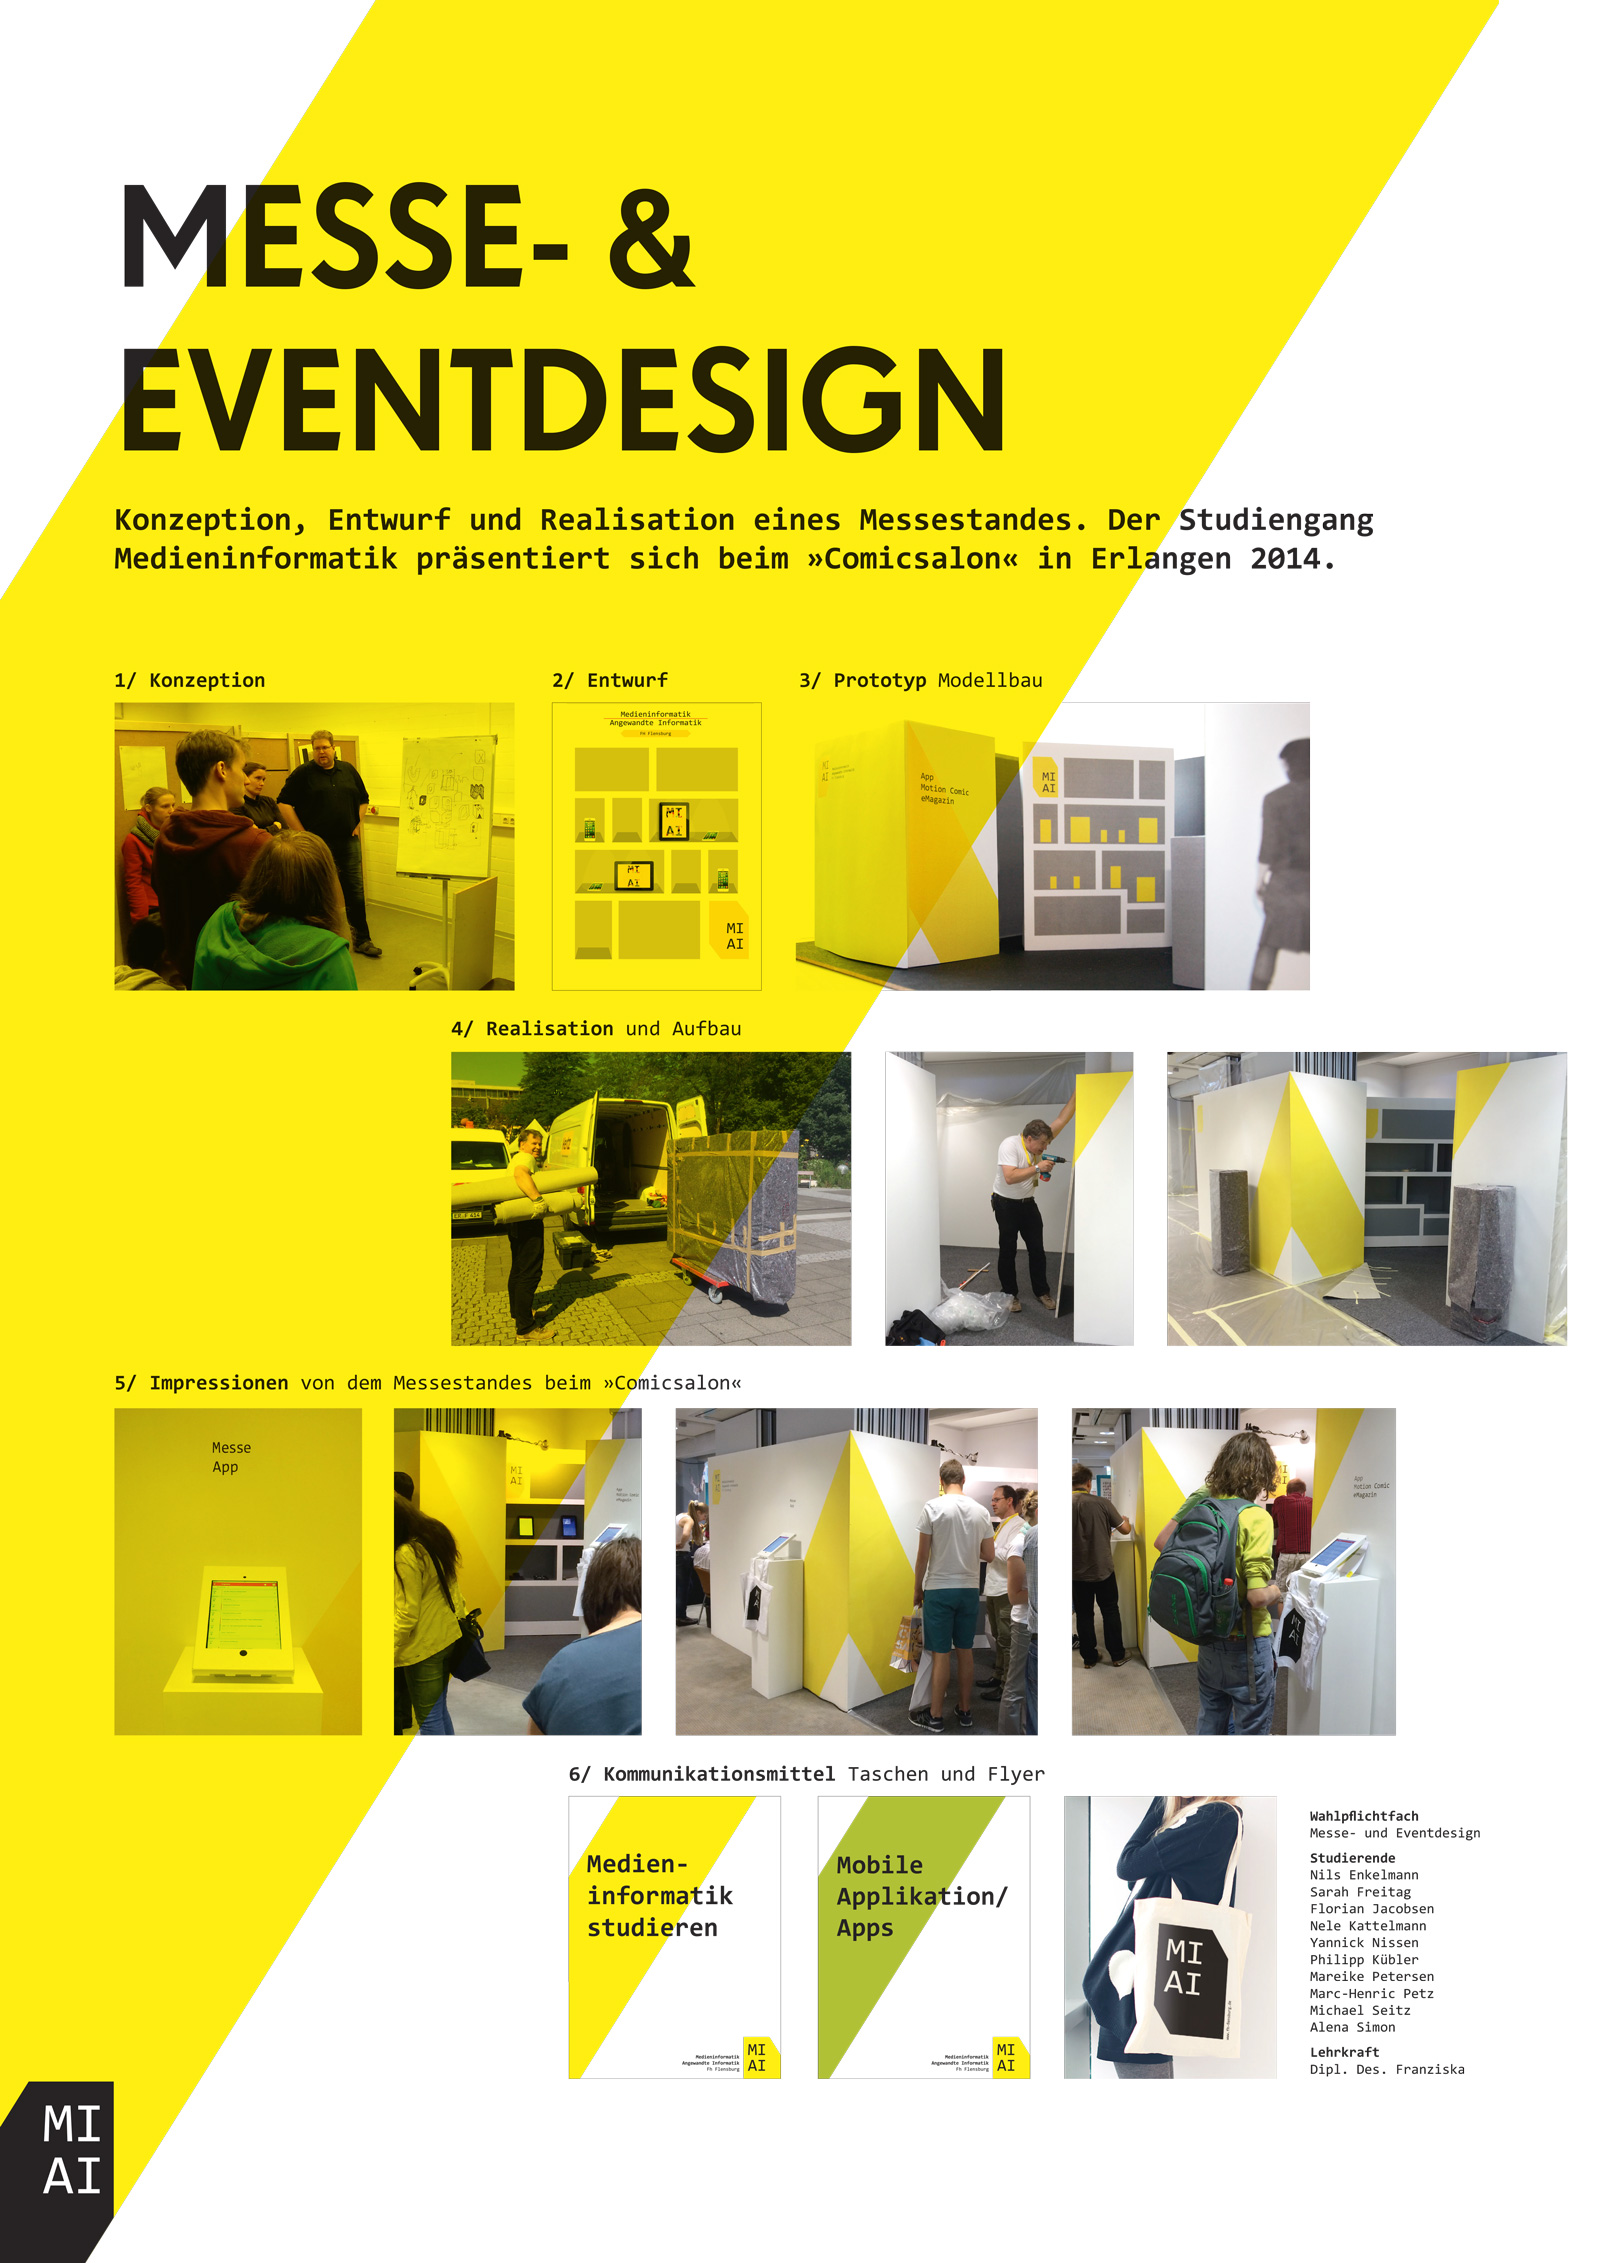 Plakat-Messe-und-Eventdesign